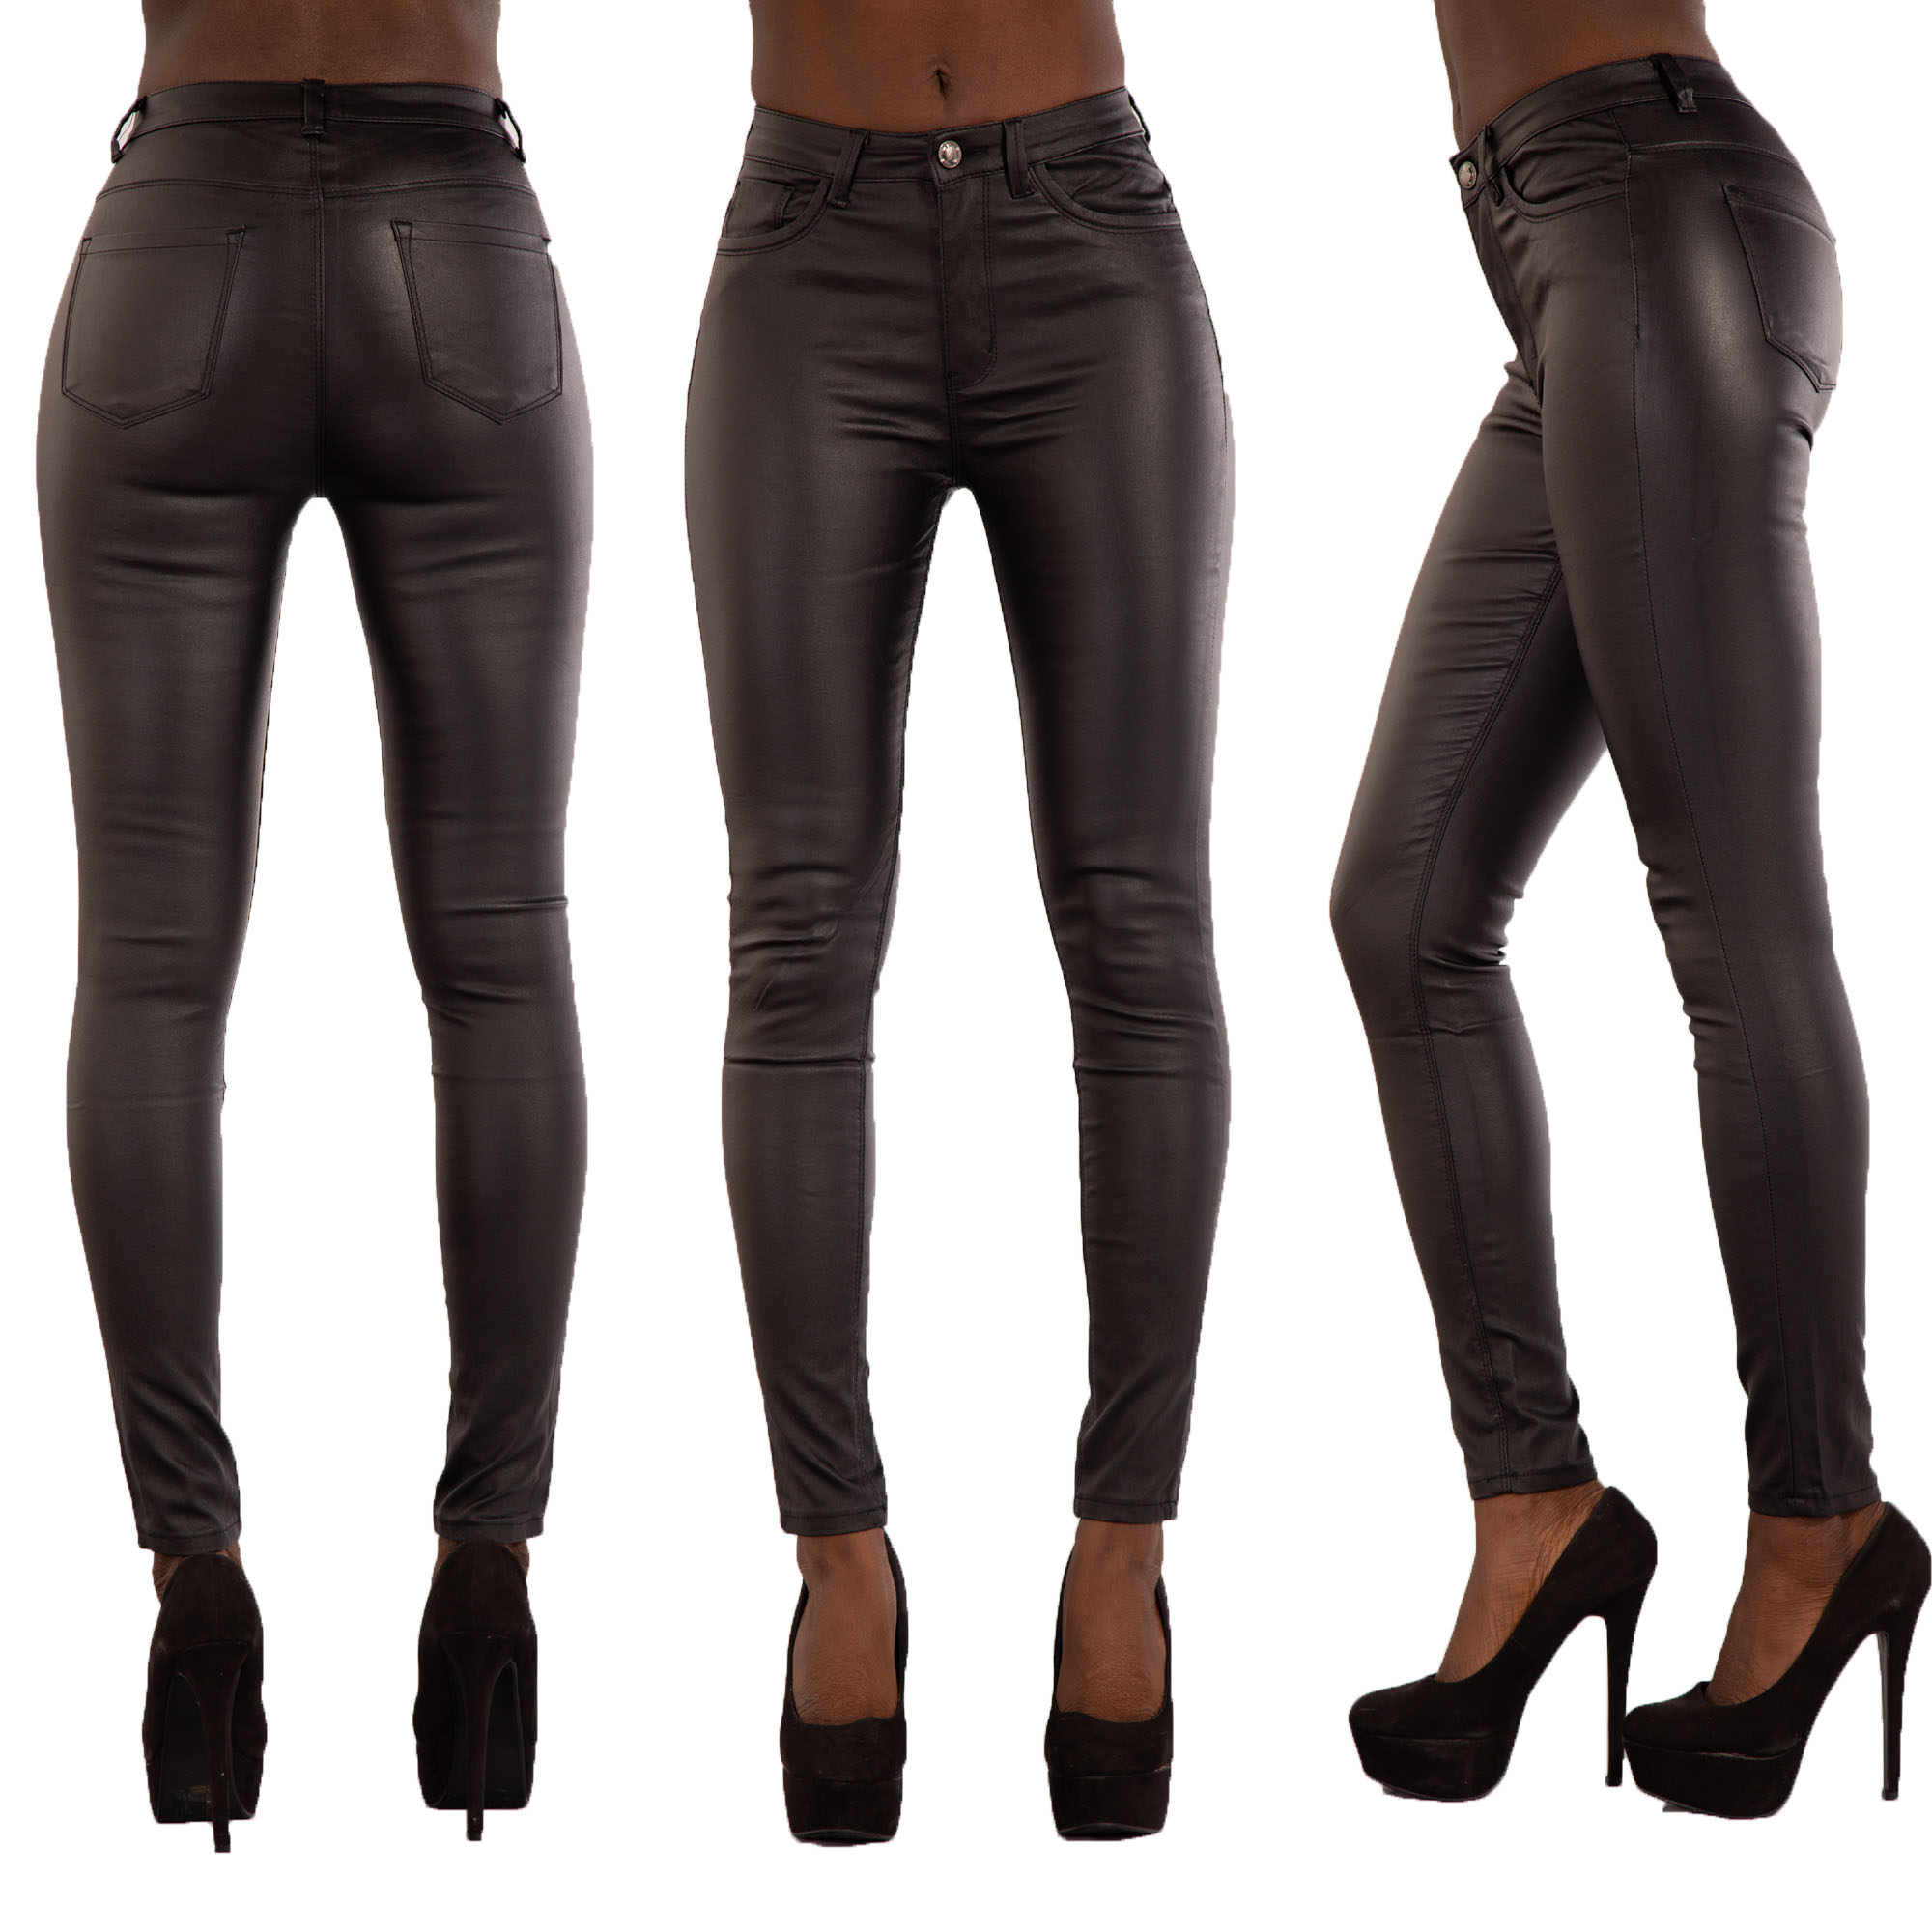 NEW WOMENS LEATHER LOOK JEANS SEXY TROUSERS LADIES BLACK SLIM FIT SIZE 6-14 d48635dd8